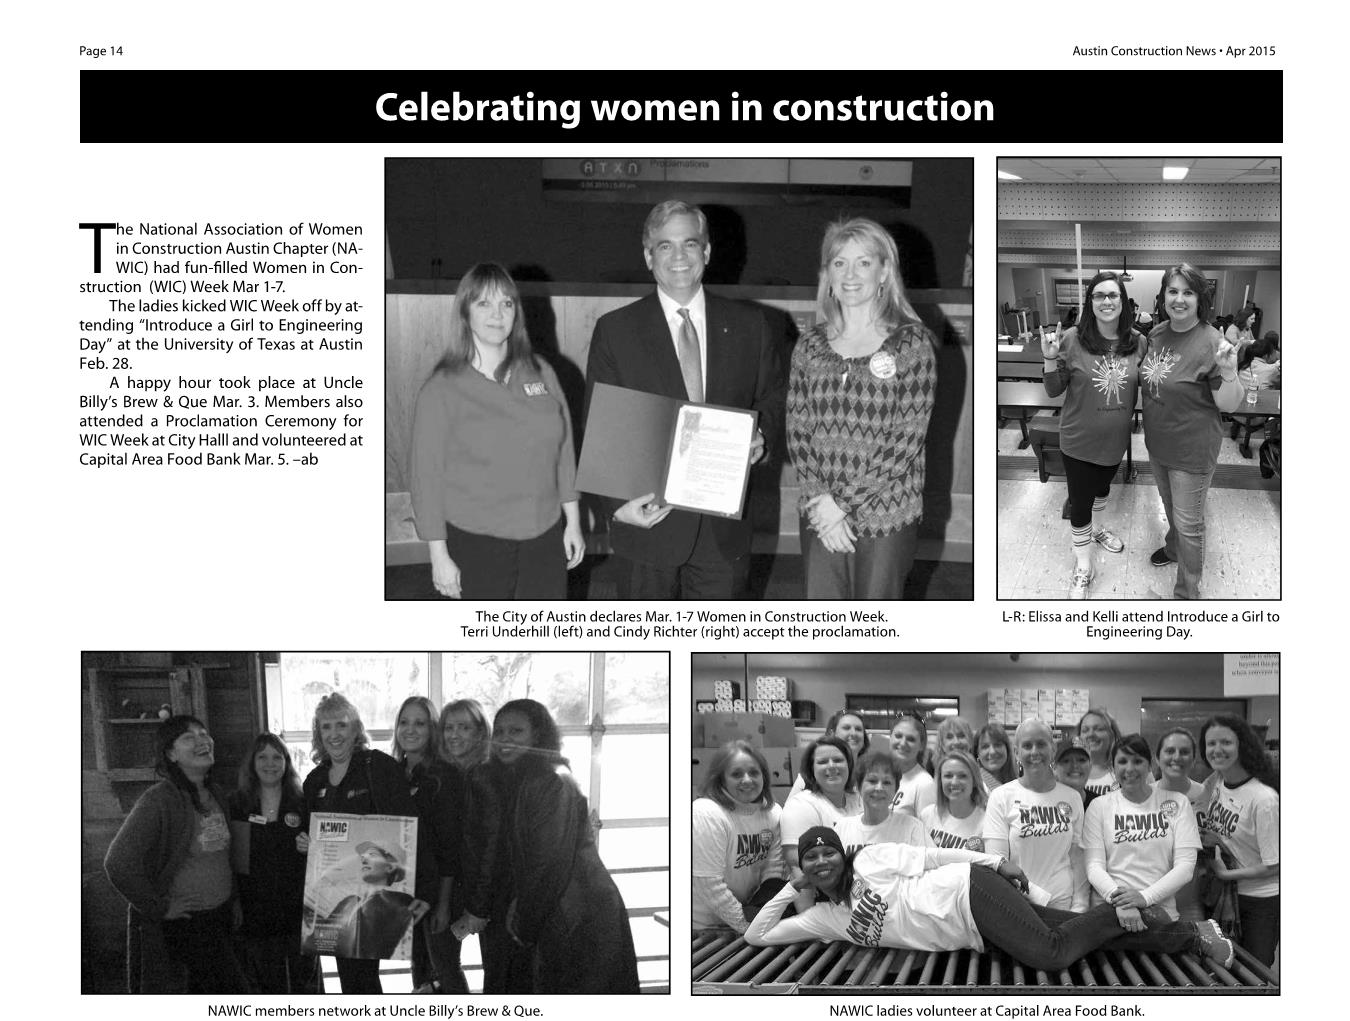 Austin Construction News_April 2015 pg14 14